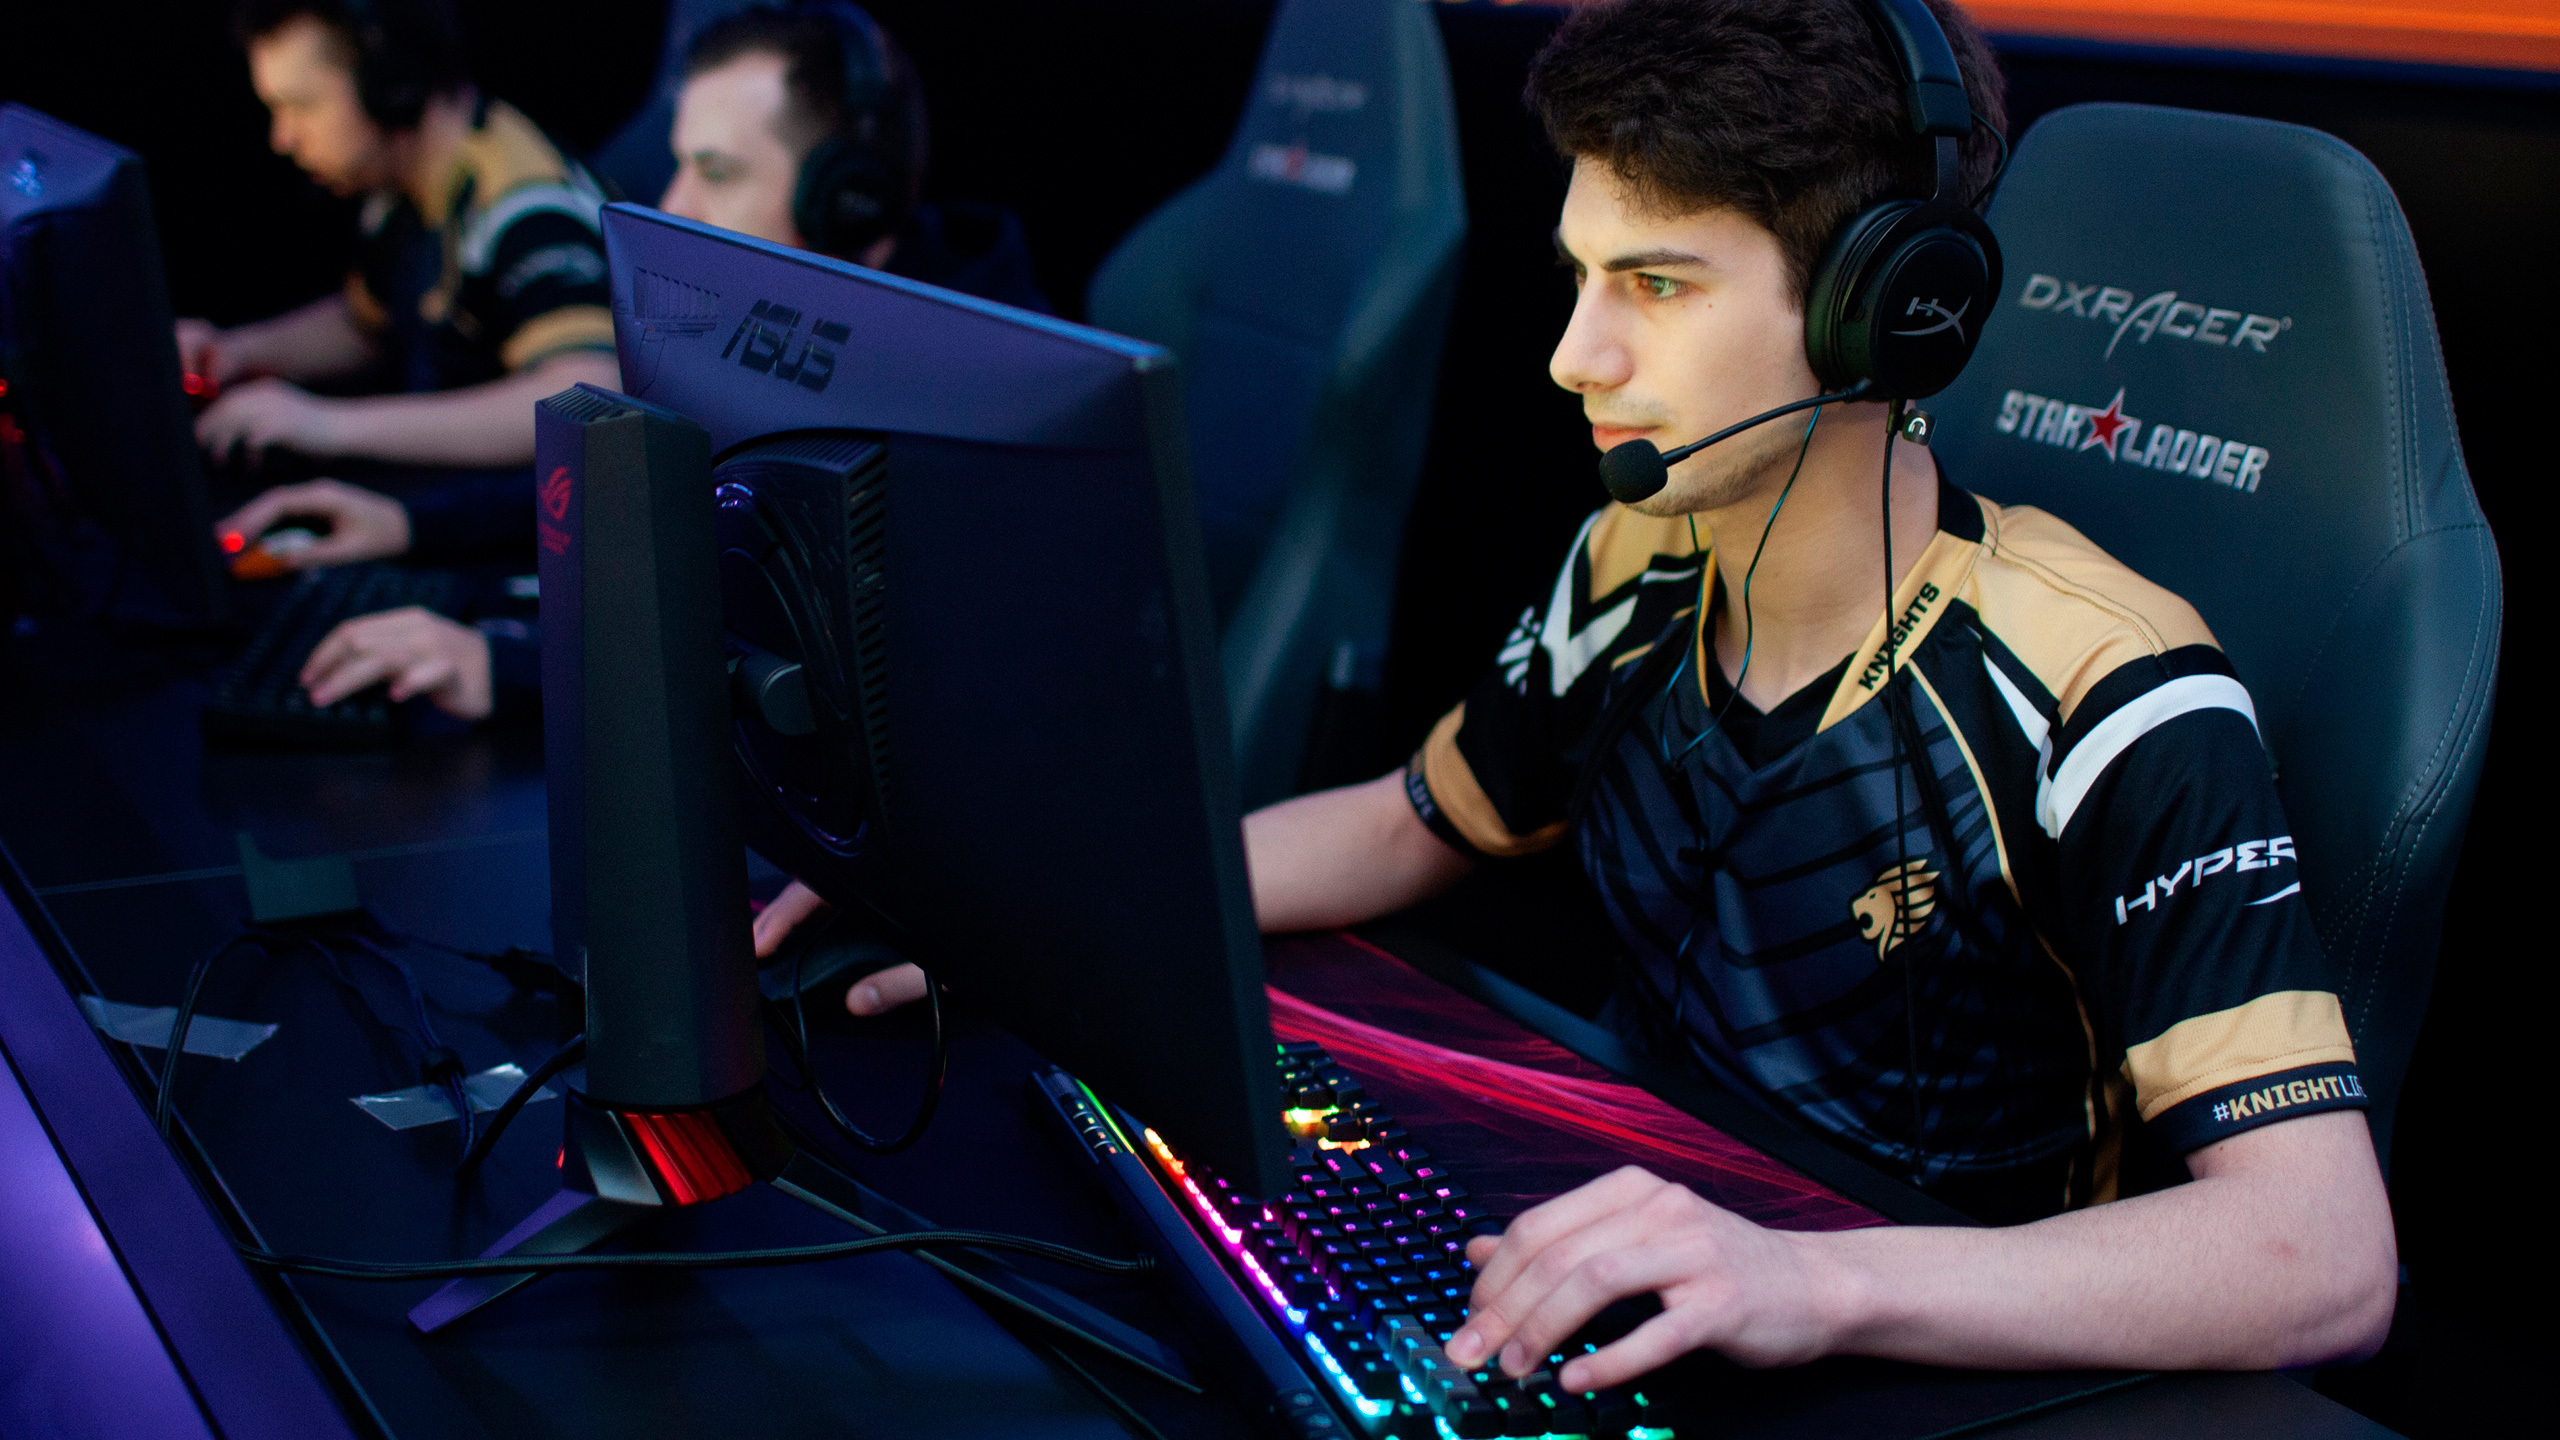 """Voxsic: """"We all feel we're some of the best players in the world"""""""